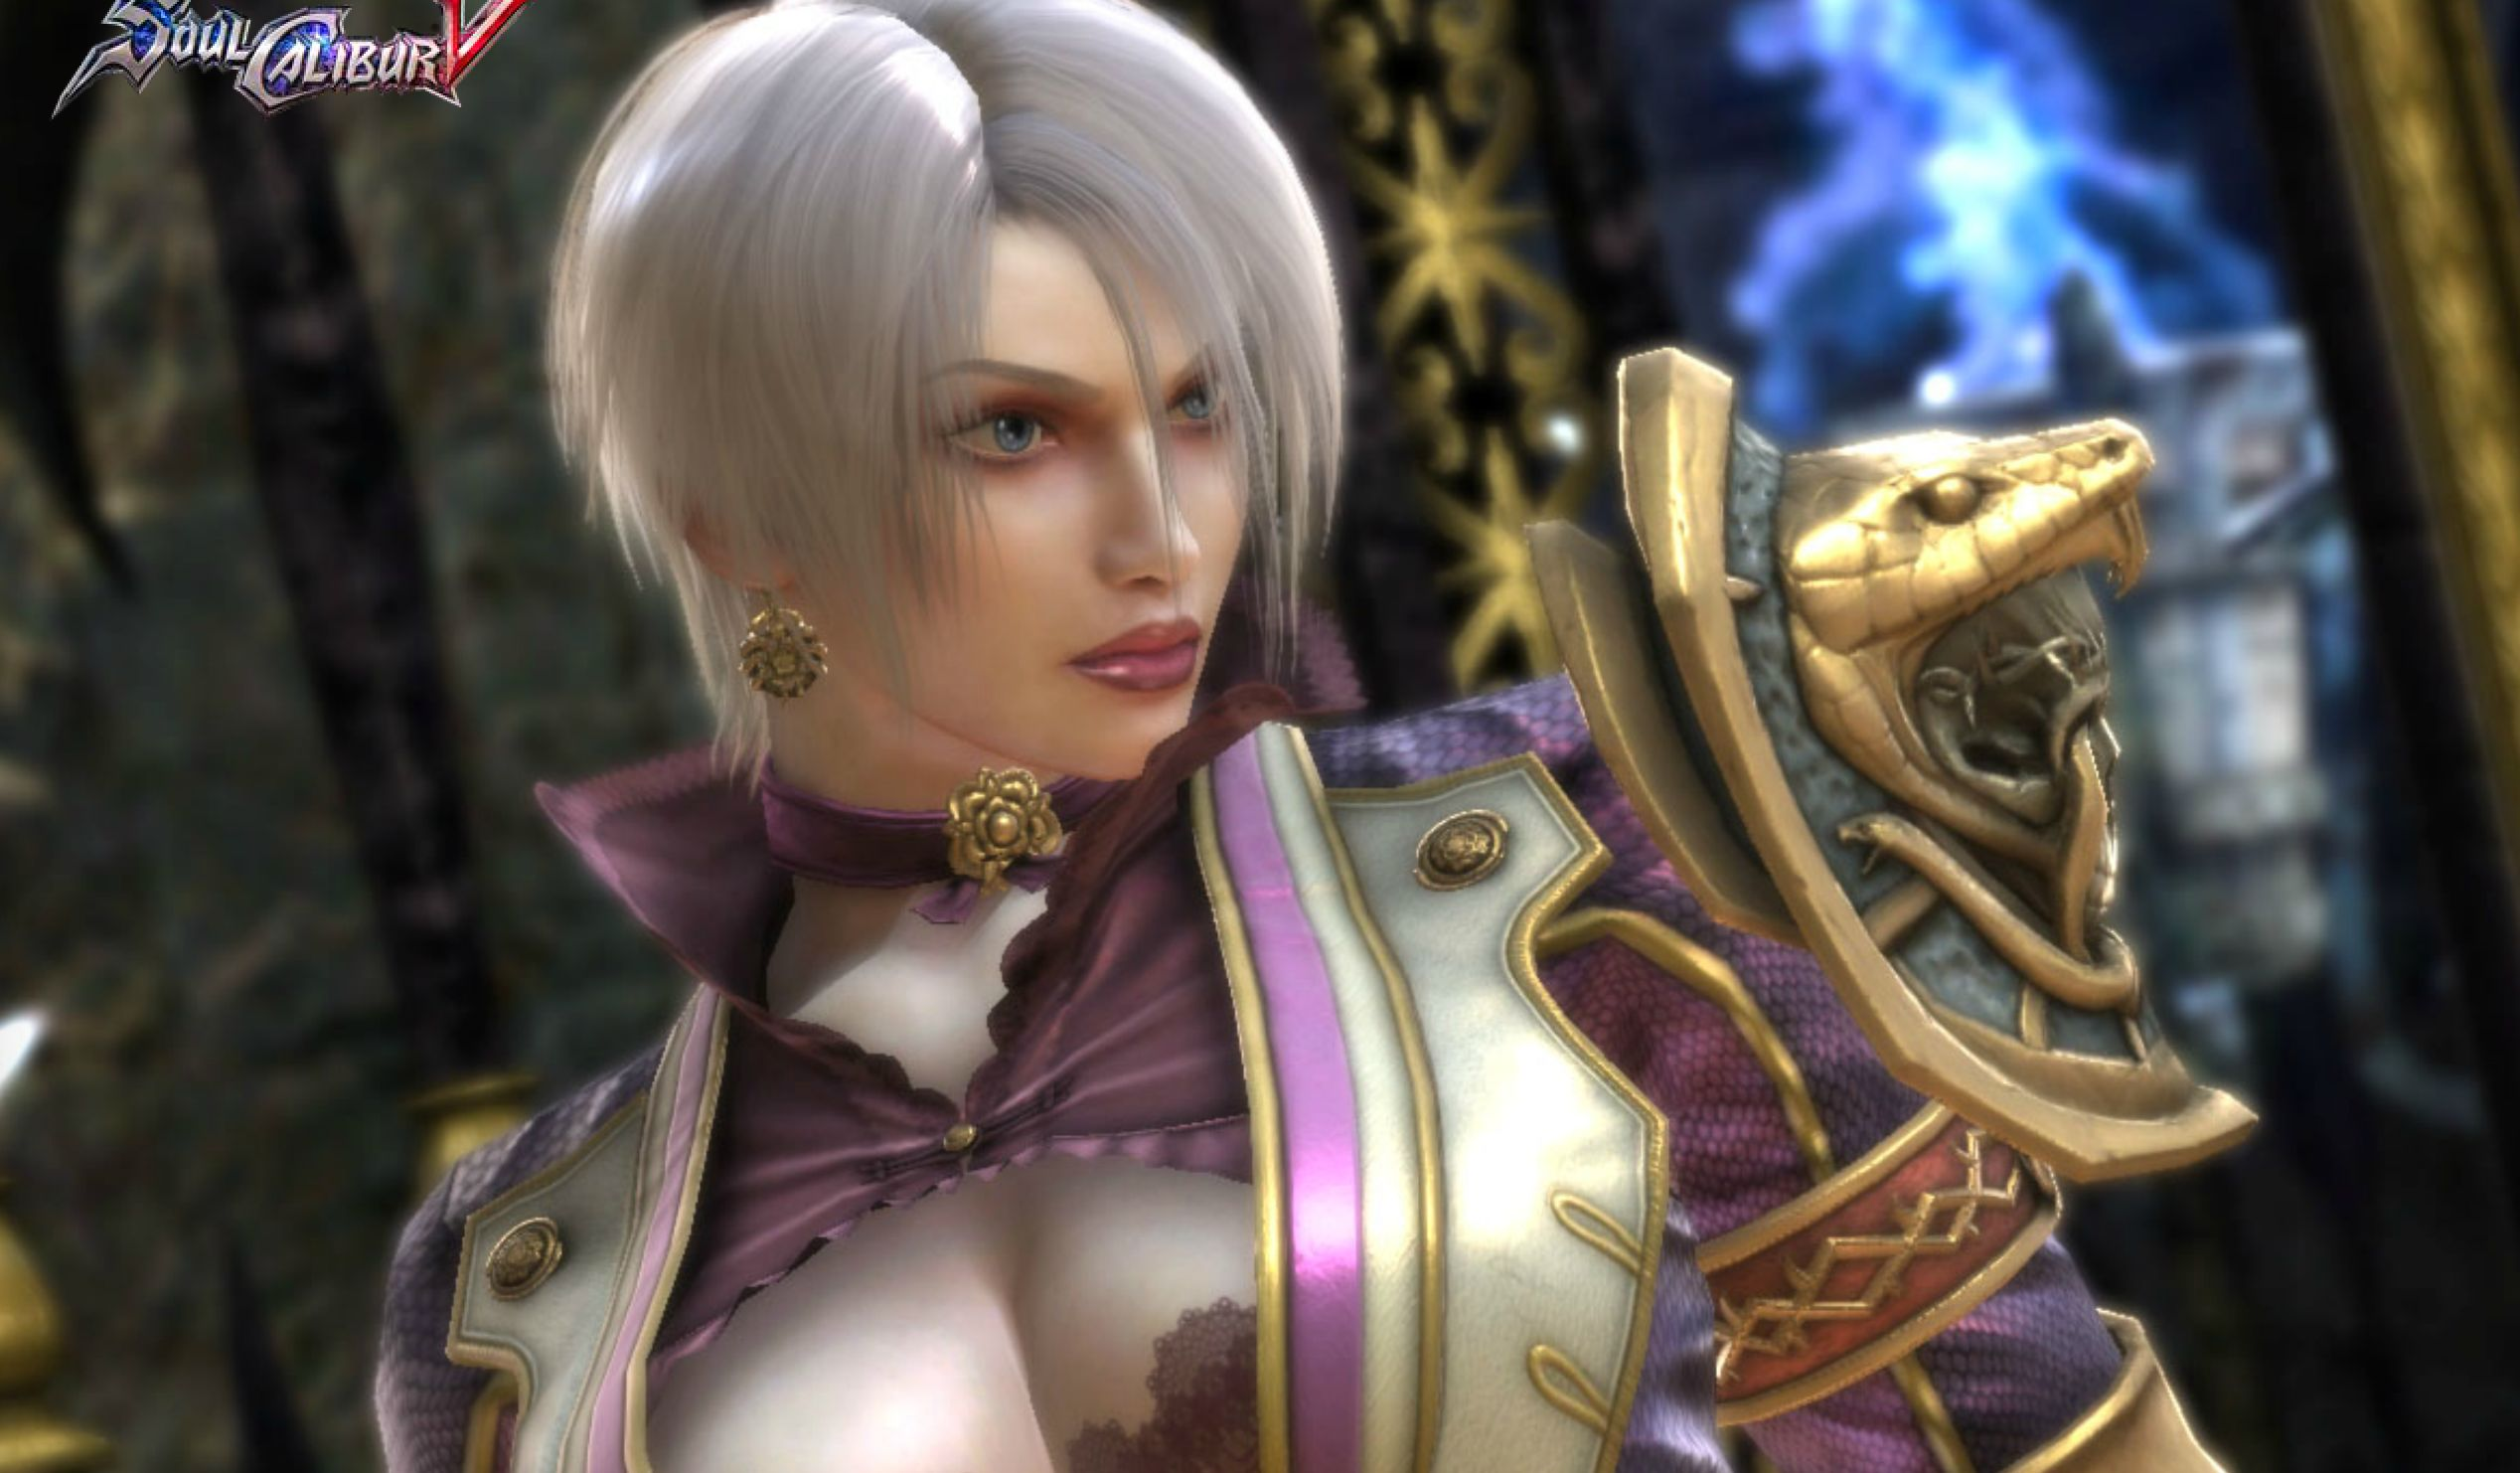 Sexualization in video games